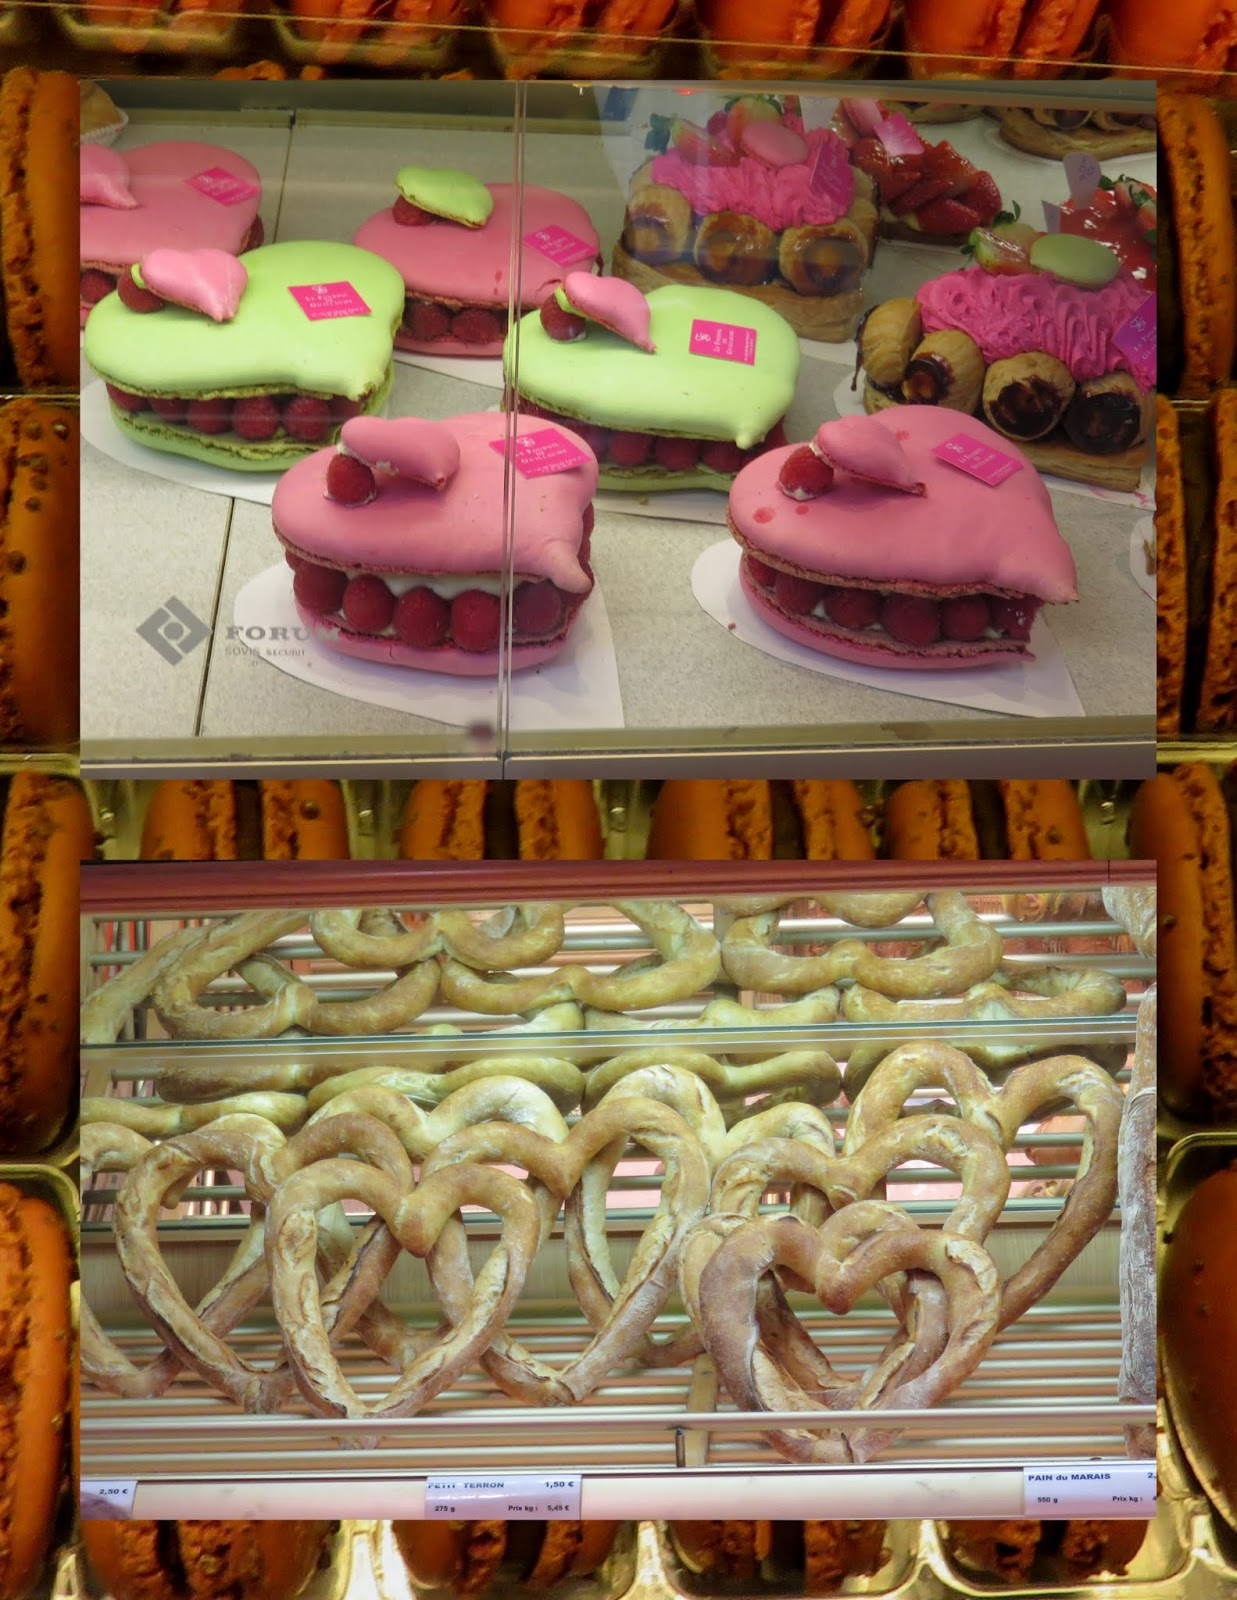 Valentine's Day Weekend in Paris - Heart shaped pastries and pretzels